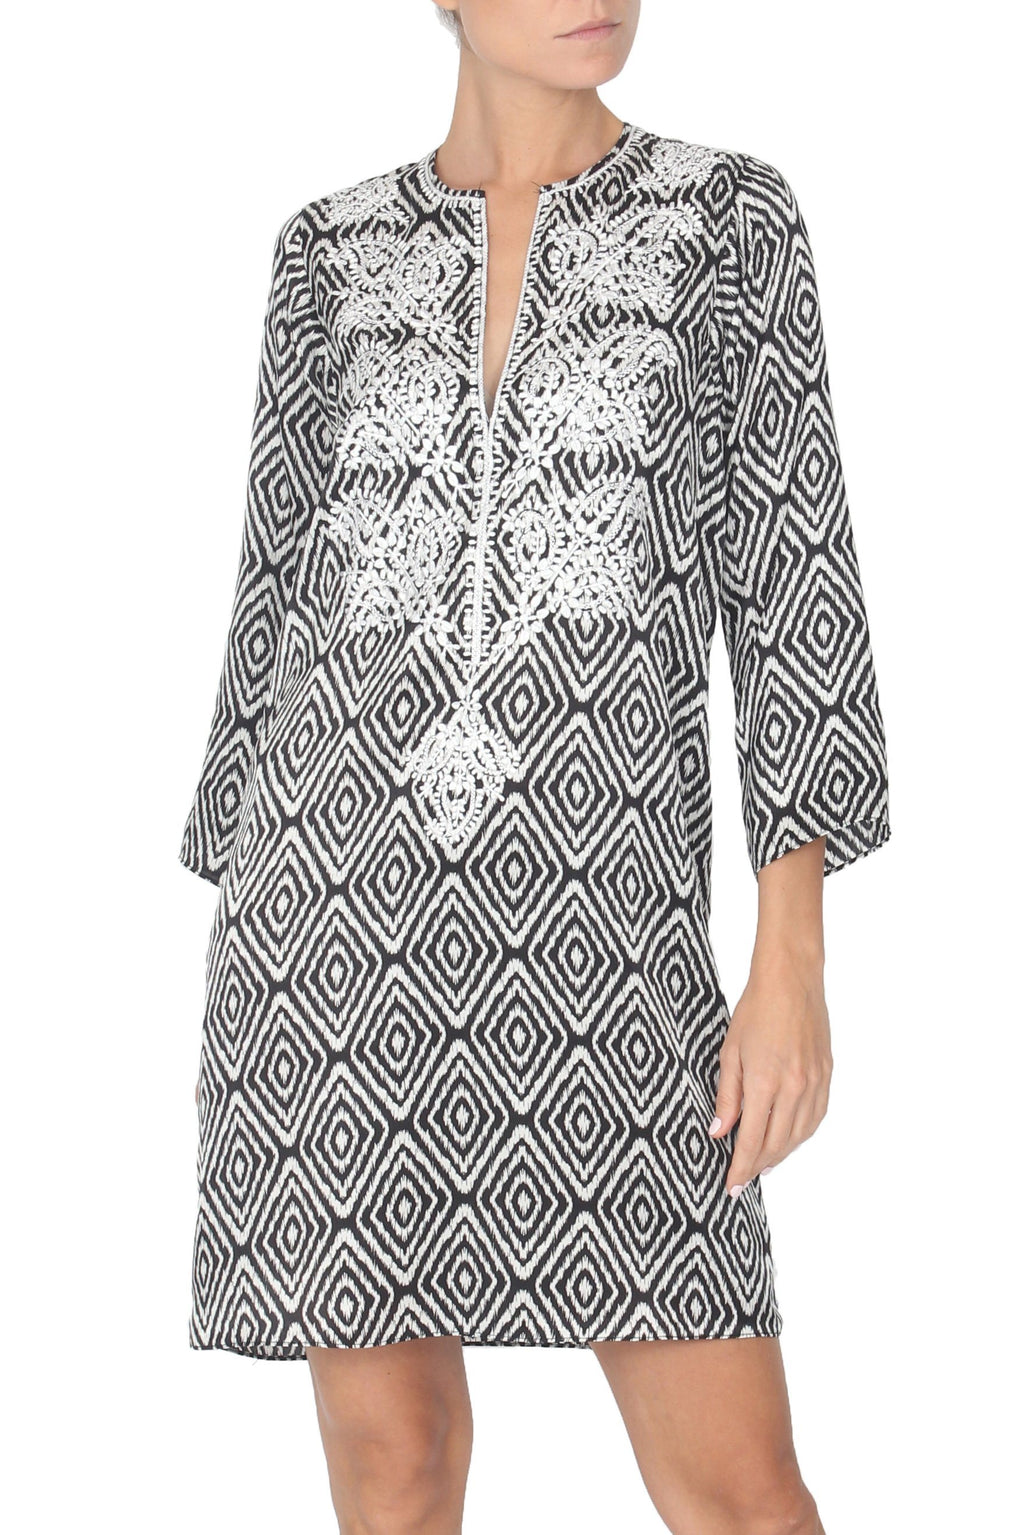 Embroidered Silk Satin Printed Dress Tunics Marie France Van Damme 0 Black & White Ikat